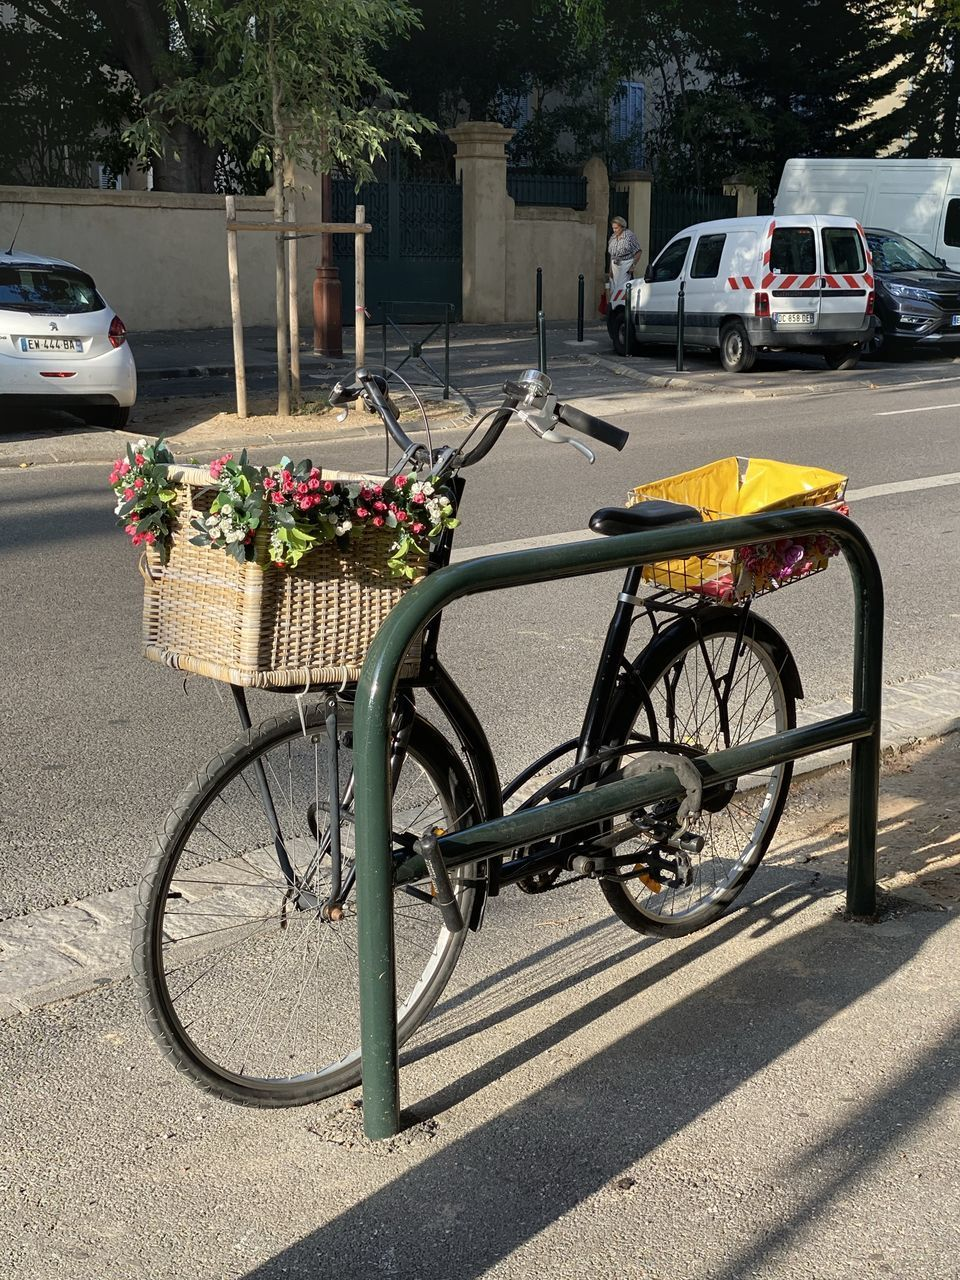 mode of transportation, transportation, land vehicle, car, motor vehicle, bicycle, city, street, road, stationary, basket, nature, day, parking, plant, architecture, sunlight, bicycle basket, flower, no people, outdoors, wheel